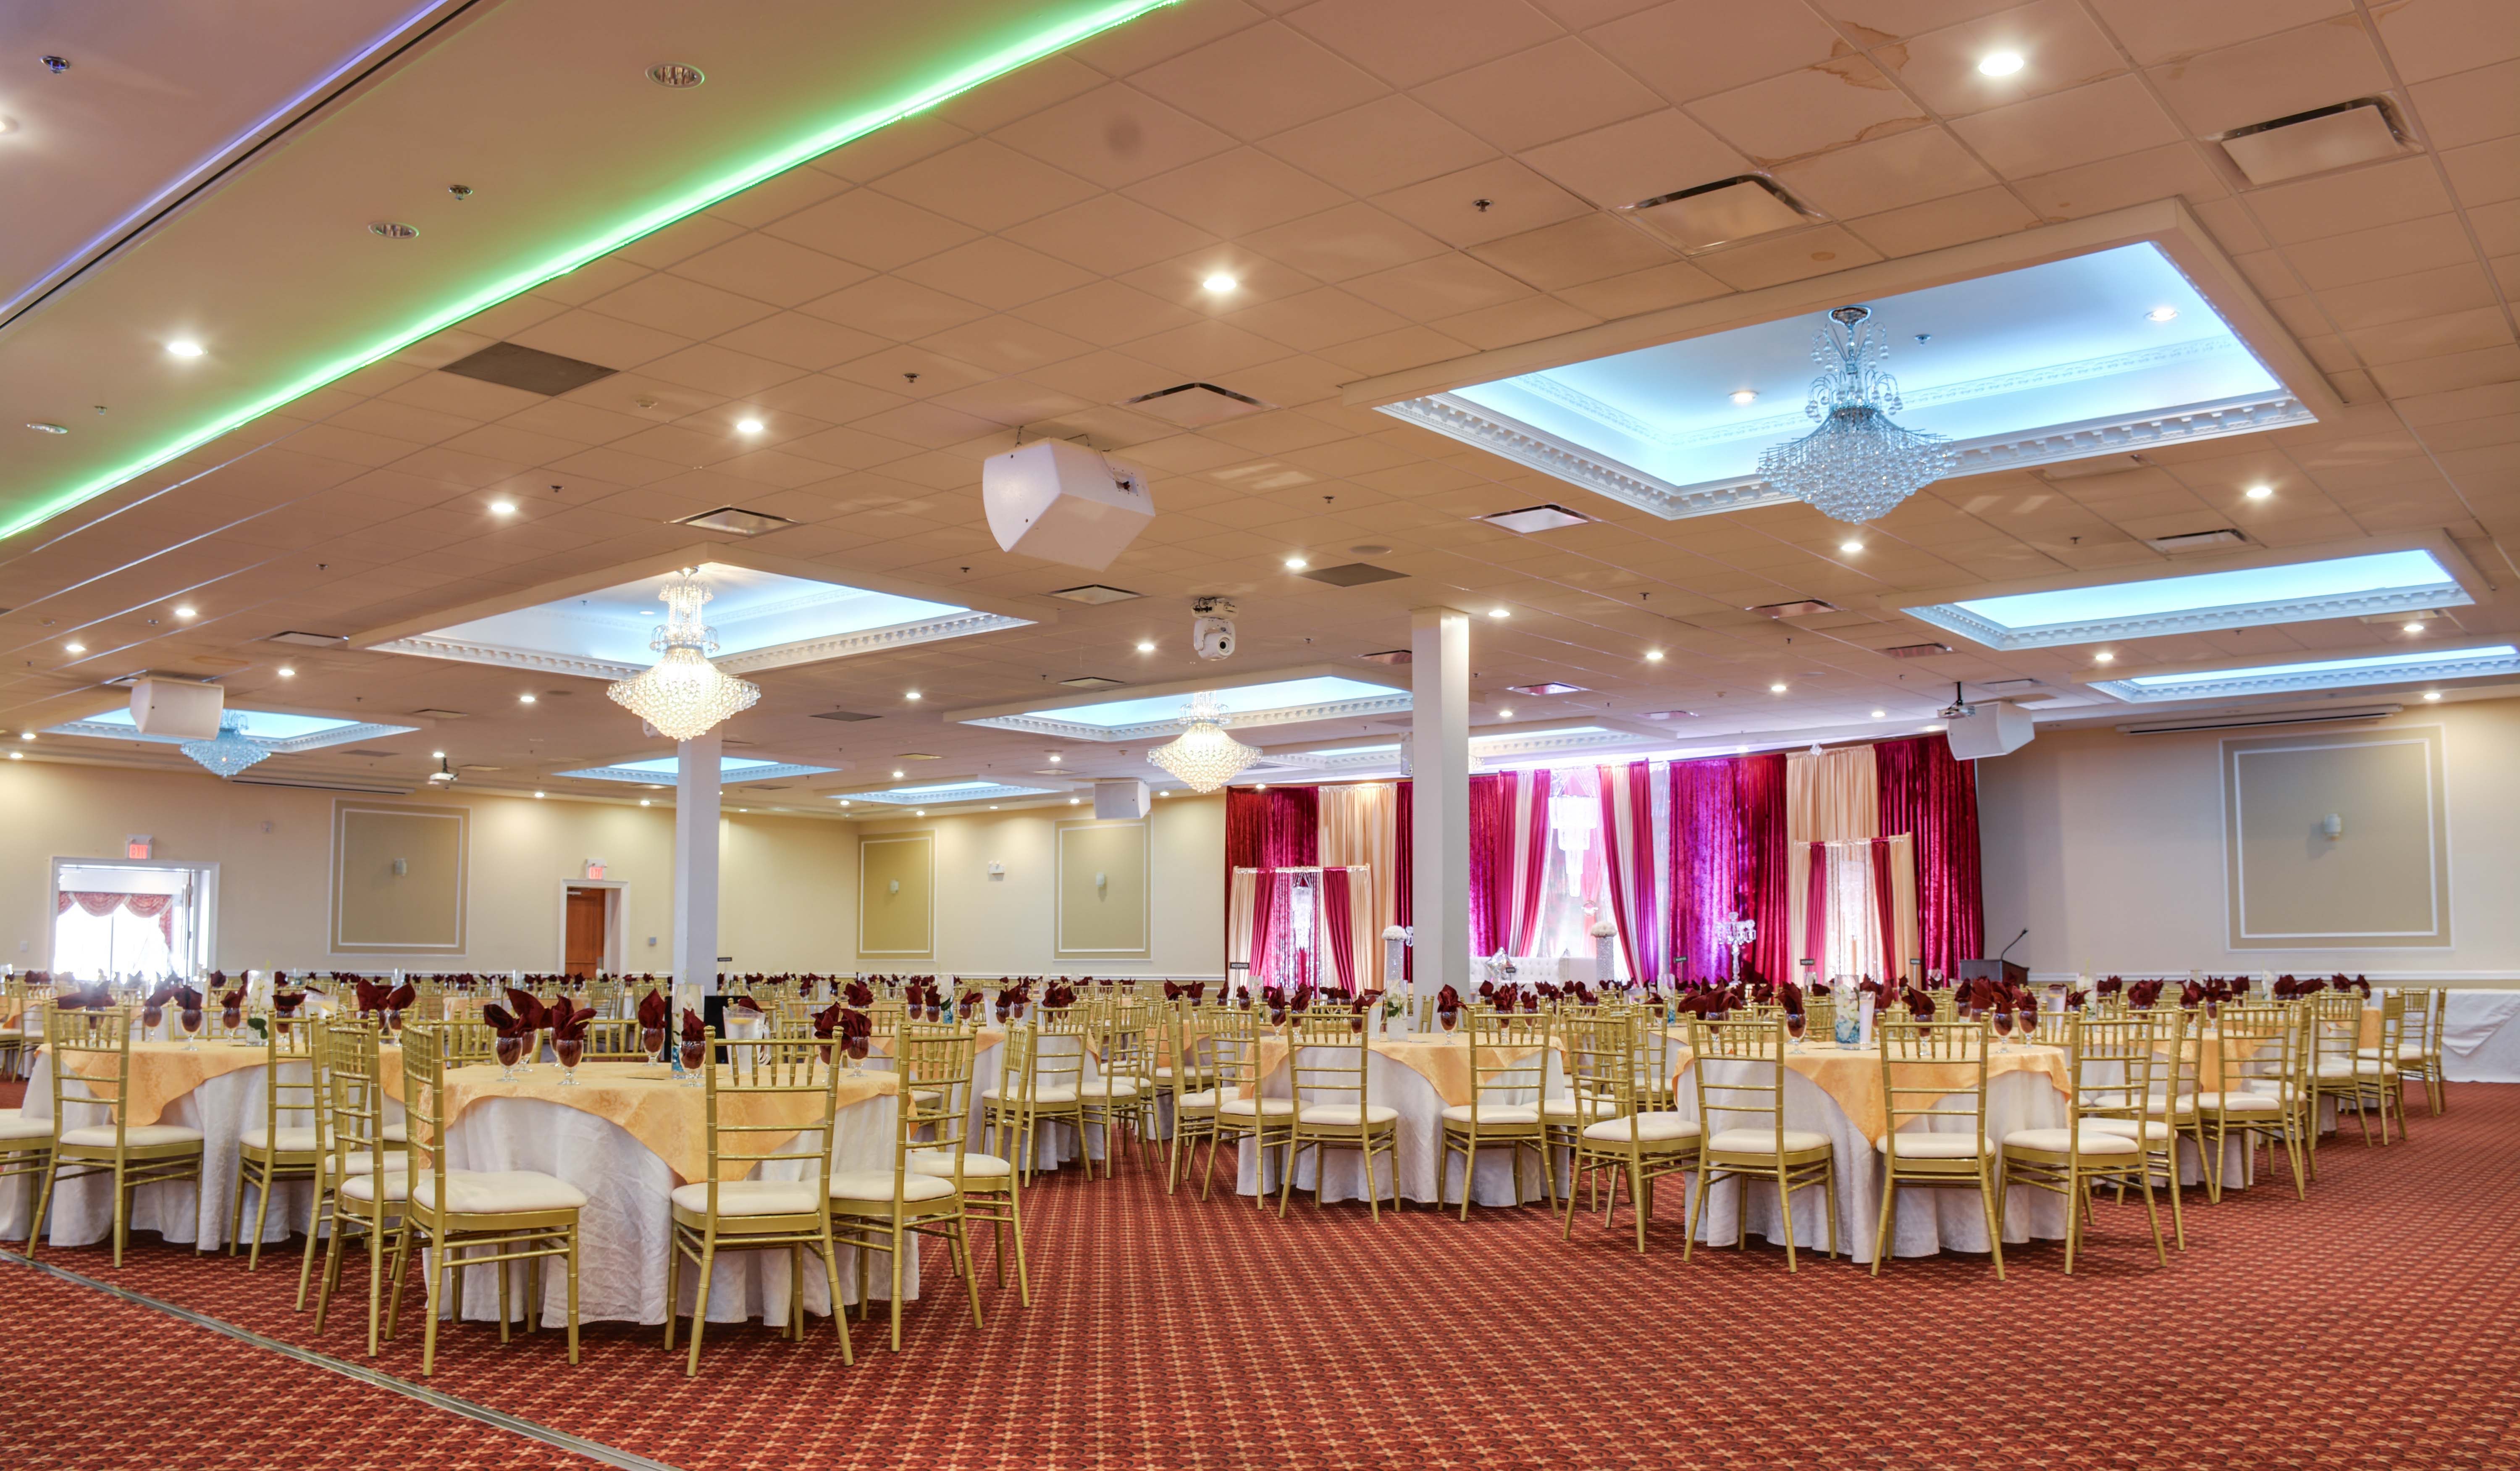 Plan Your Next Event At Bovaird Banquet Hall